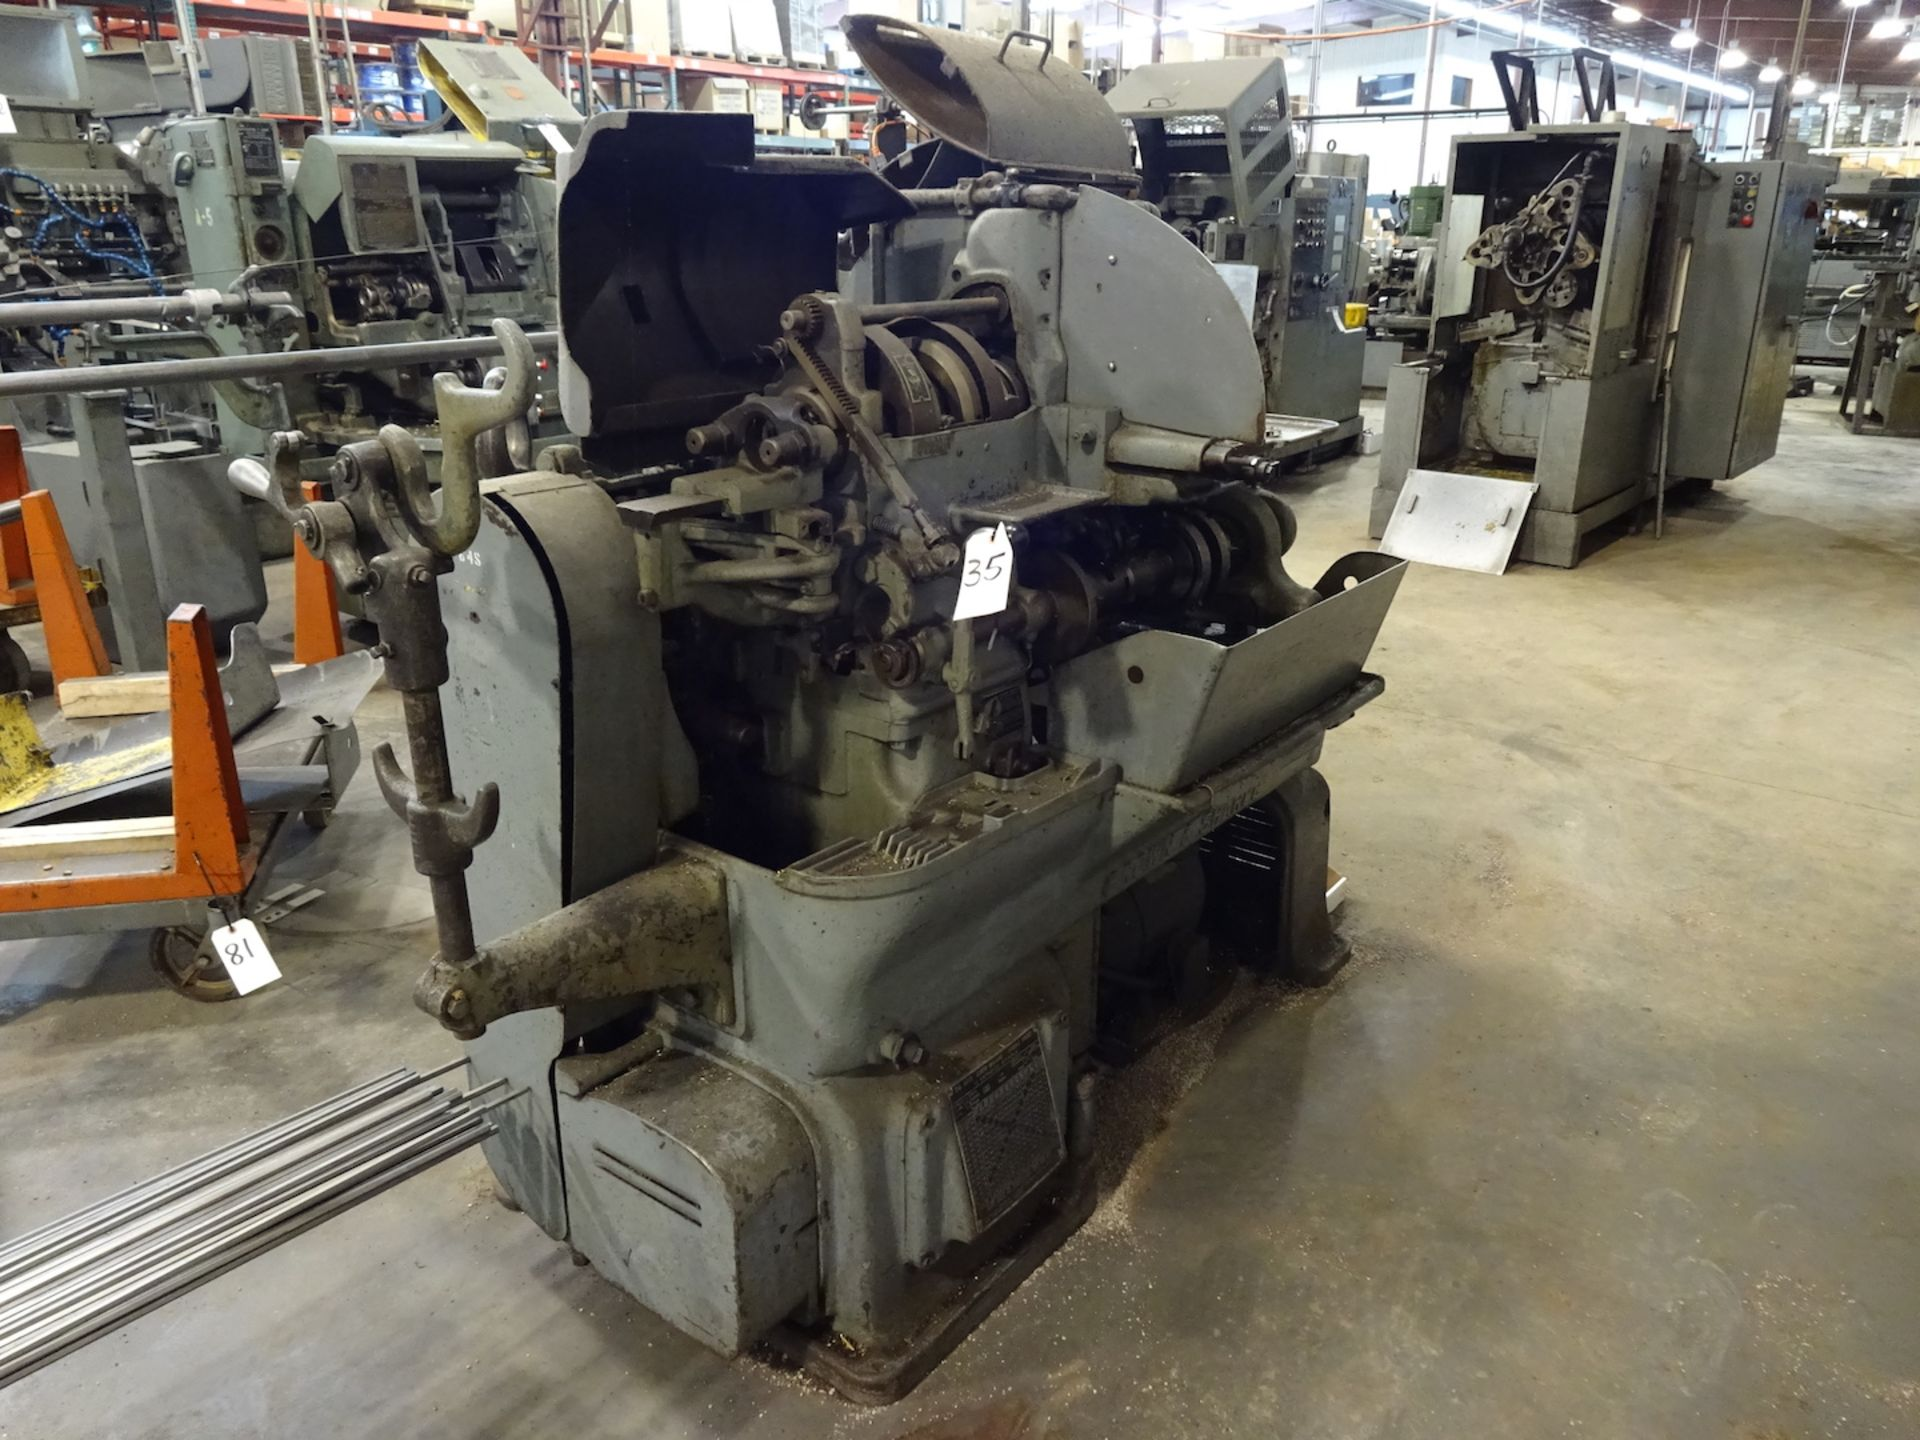 Lot 35 - Brown & Sharpe 1-1/2 in. Model 2G Single-Spindle Automatic Screw Machine, S/N 542-2-1533